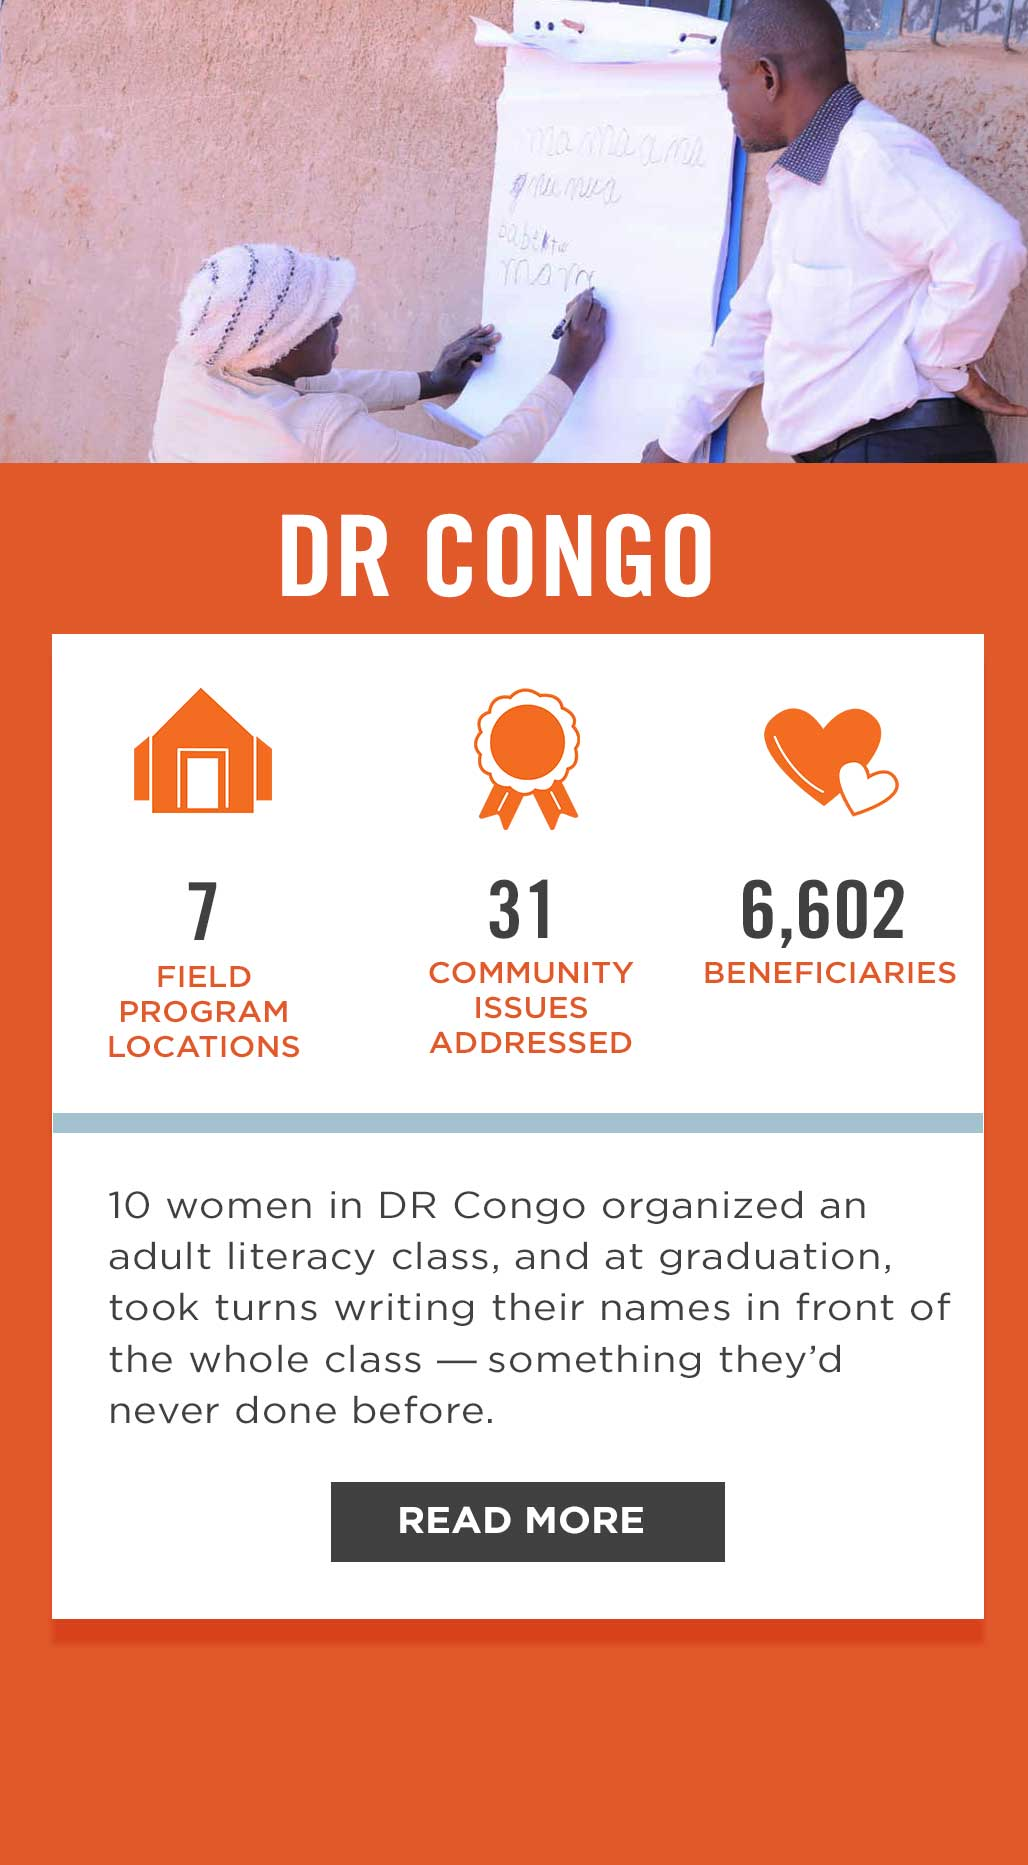 DR Congo Field Program